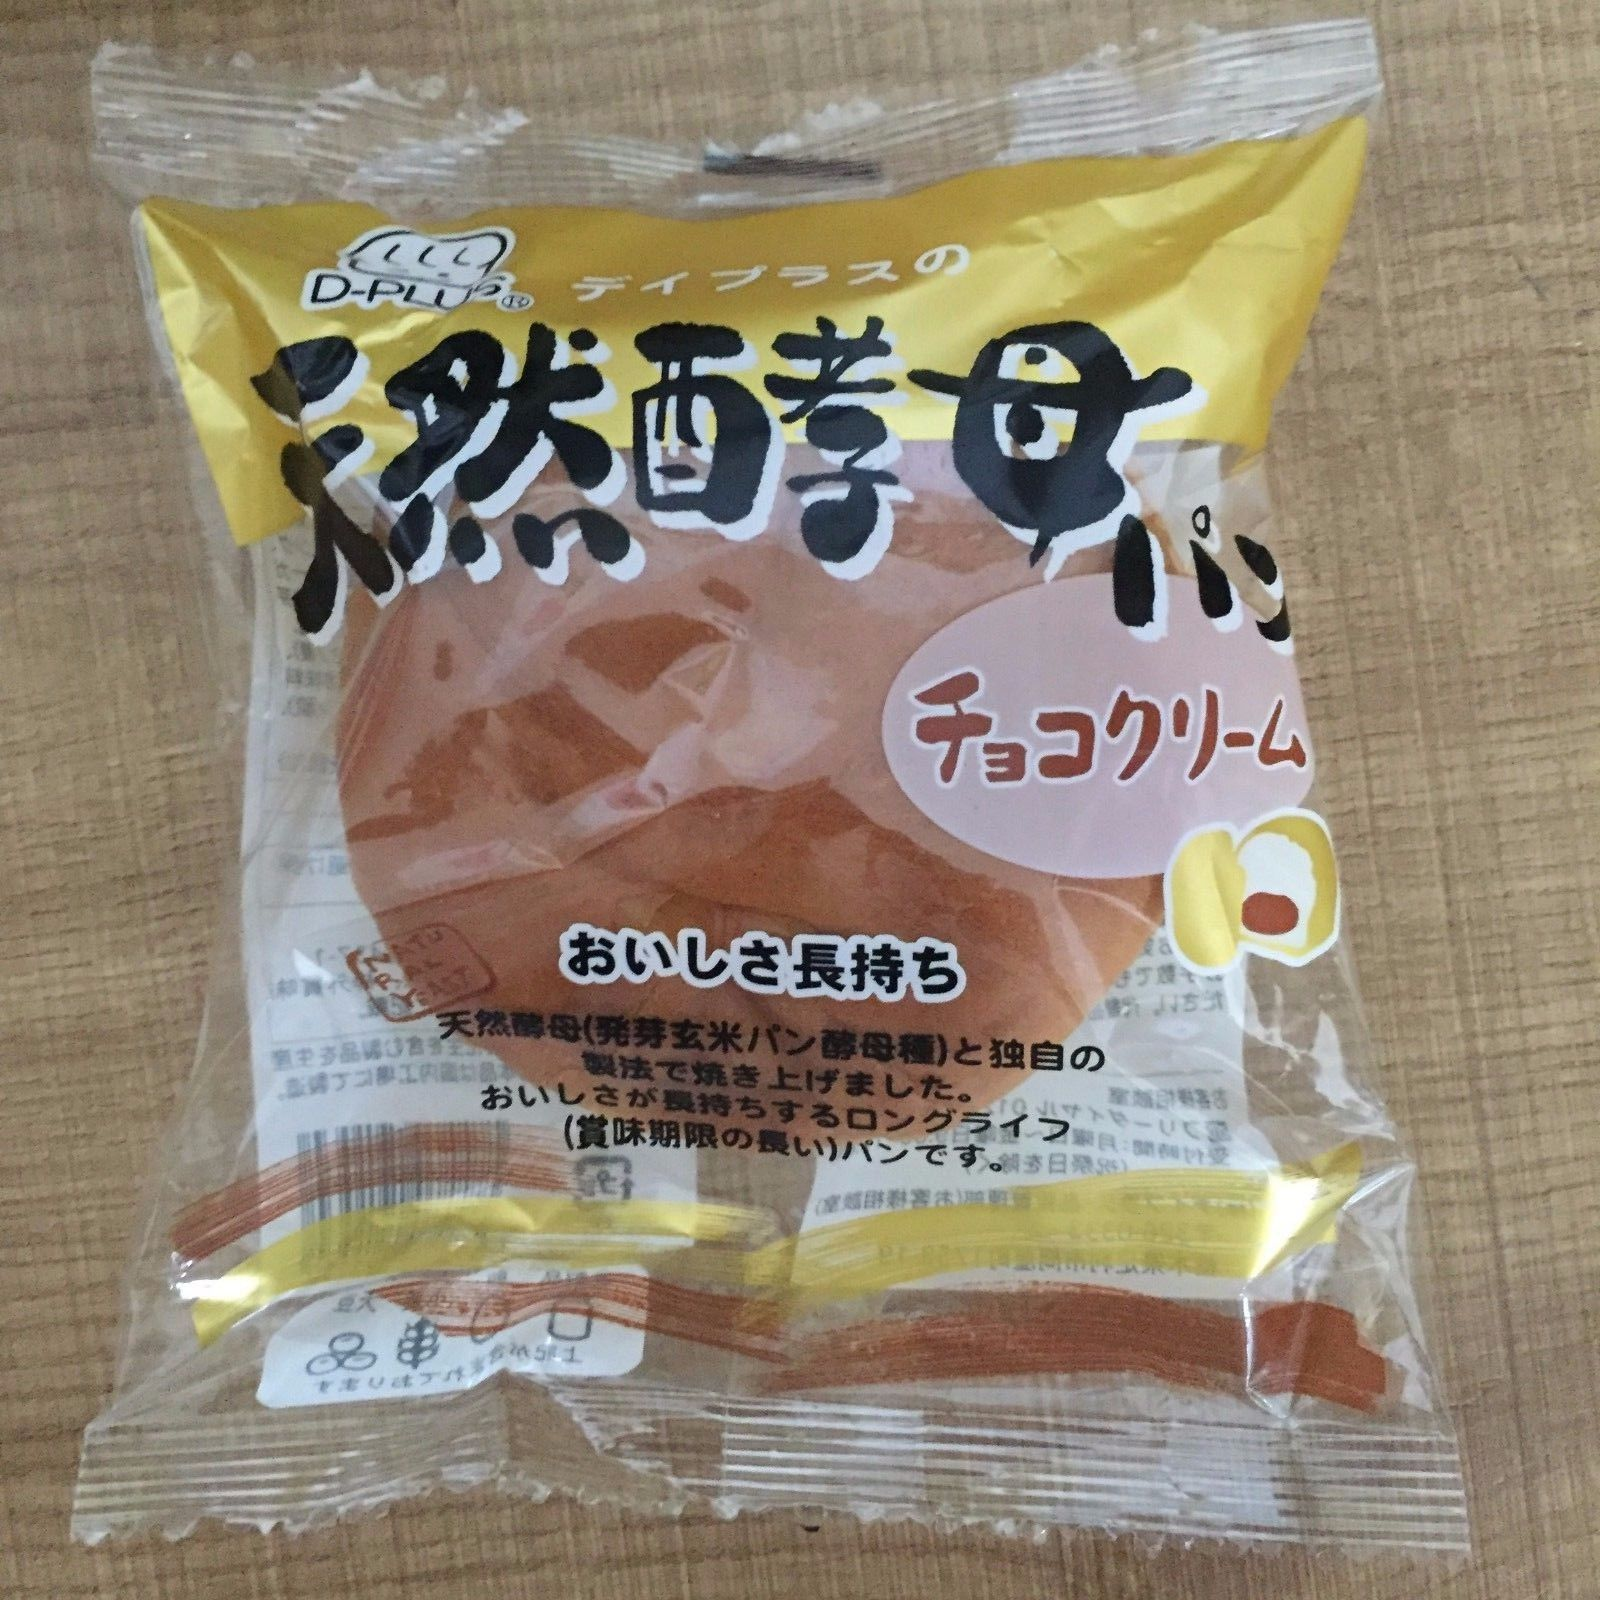 Great Japanese Bread, Chocolate Cream, Soft Pan, D-Plus, ,